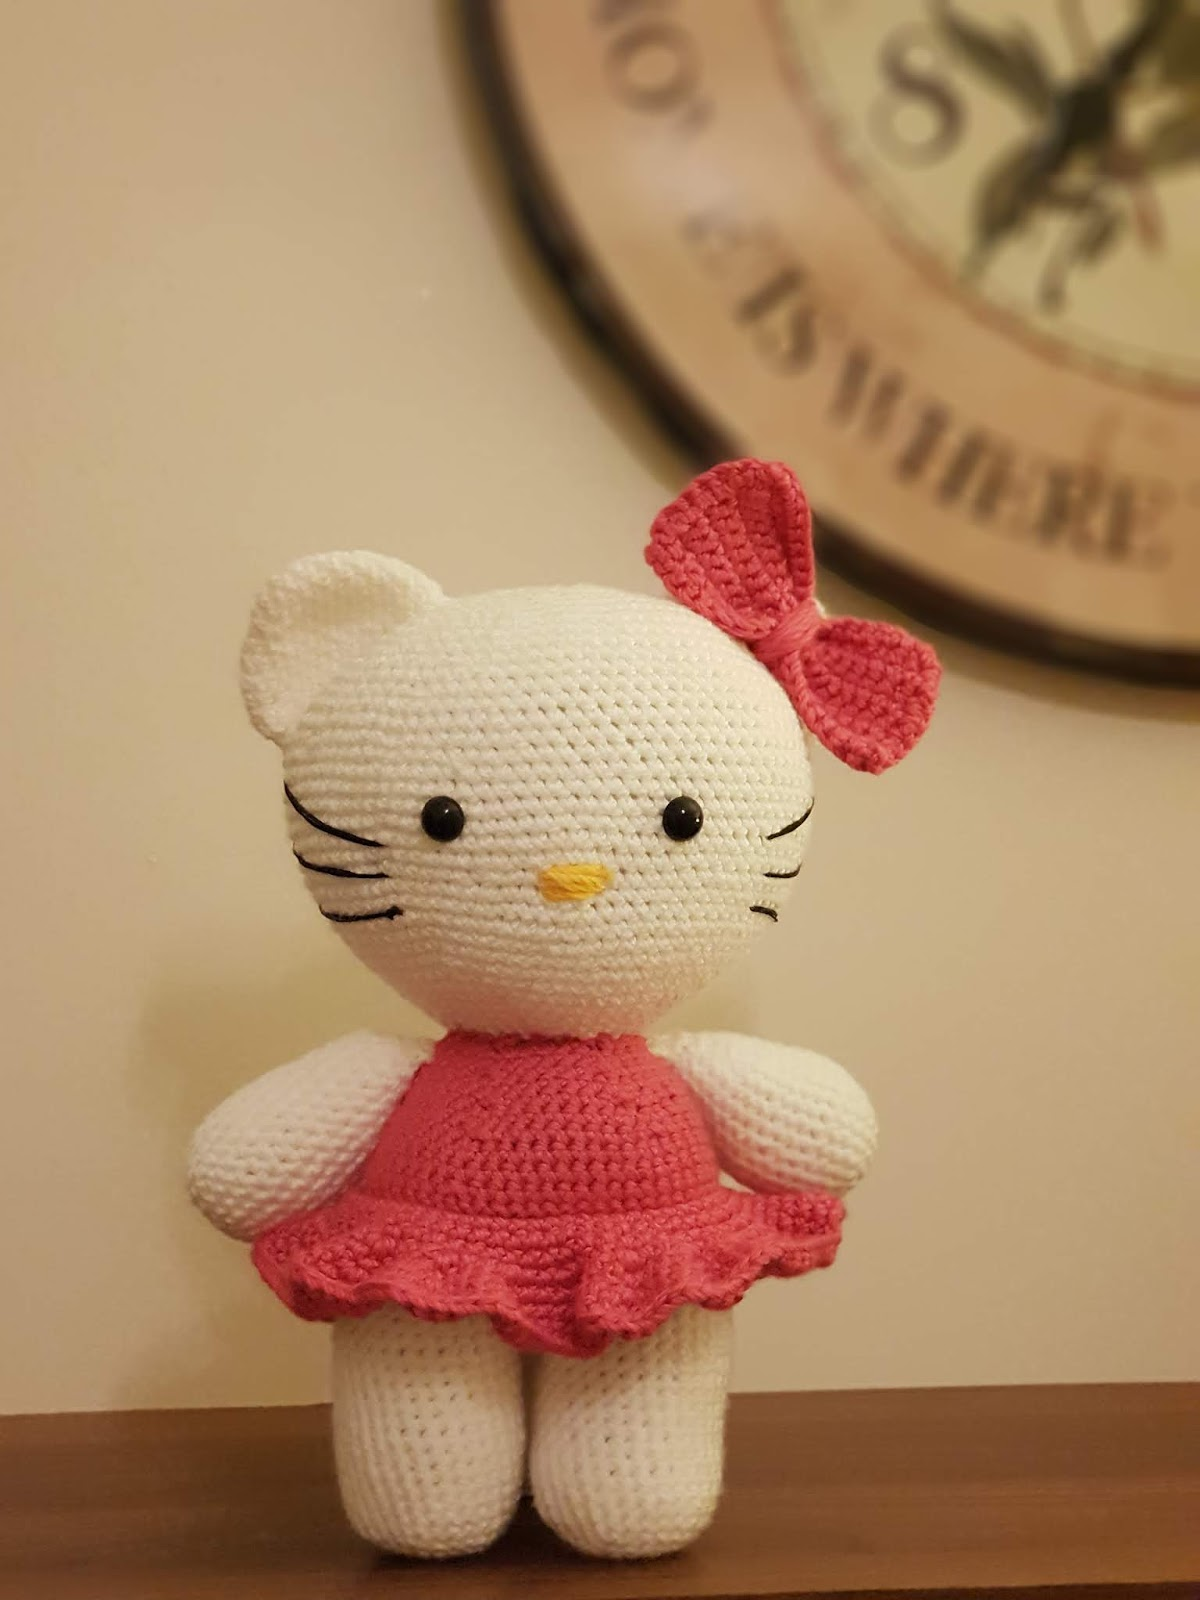 hello kitty yapılışı, amigurumi free pattern hello kitty | yaseminkale | 1600x1200